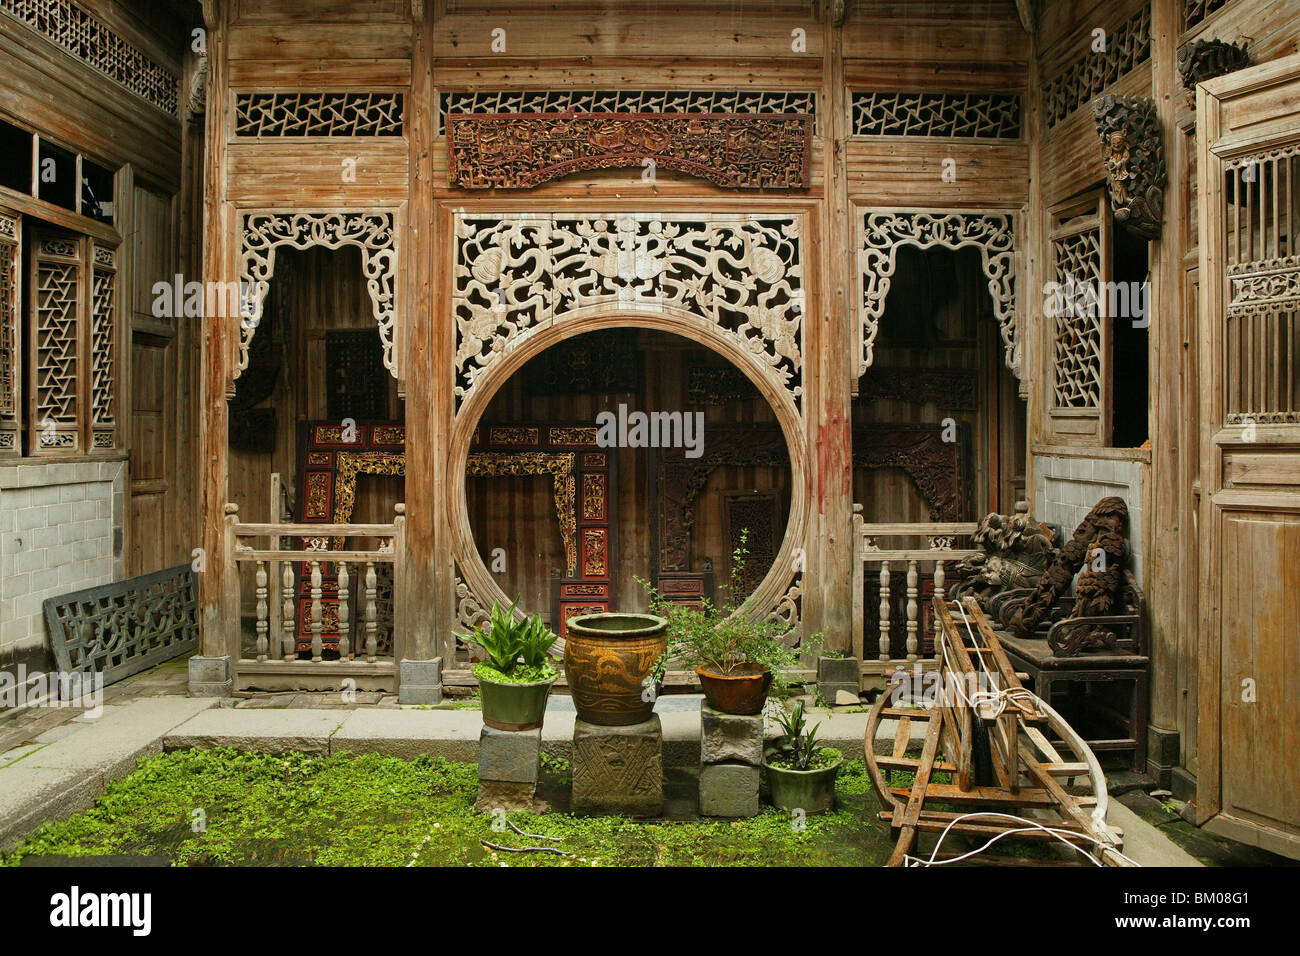 courtyard with elaborate carved timber screens, pot plants, Hongcun, ancient village, living museum, China, Asia, - Stock Image